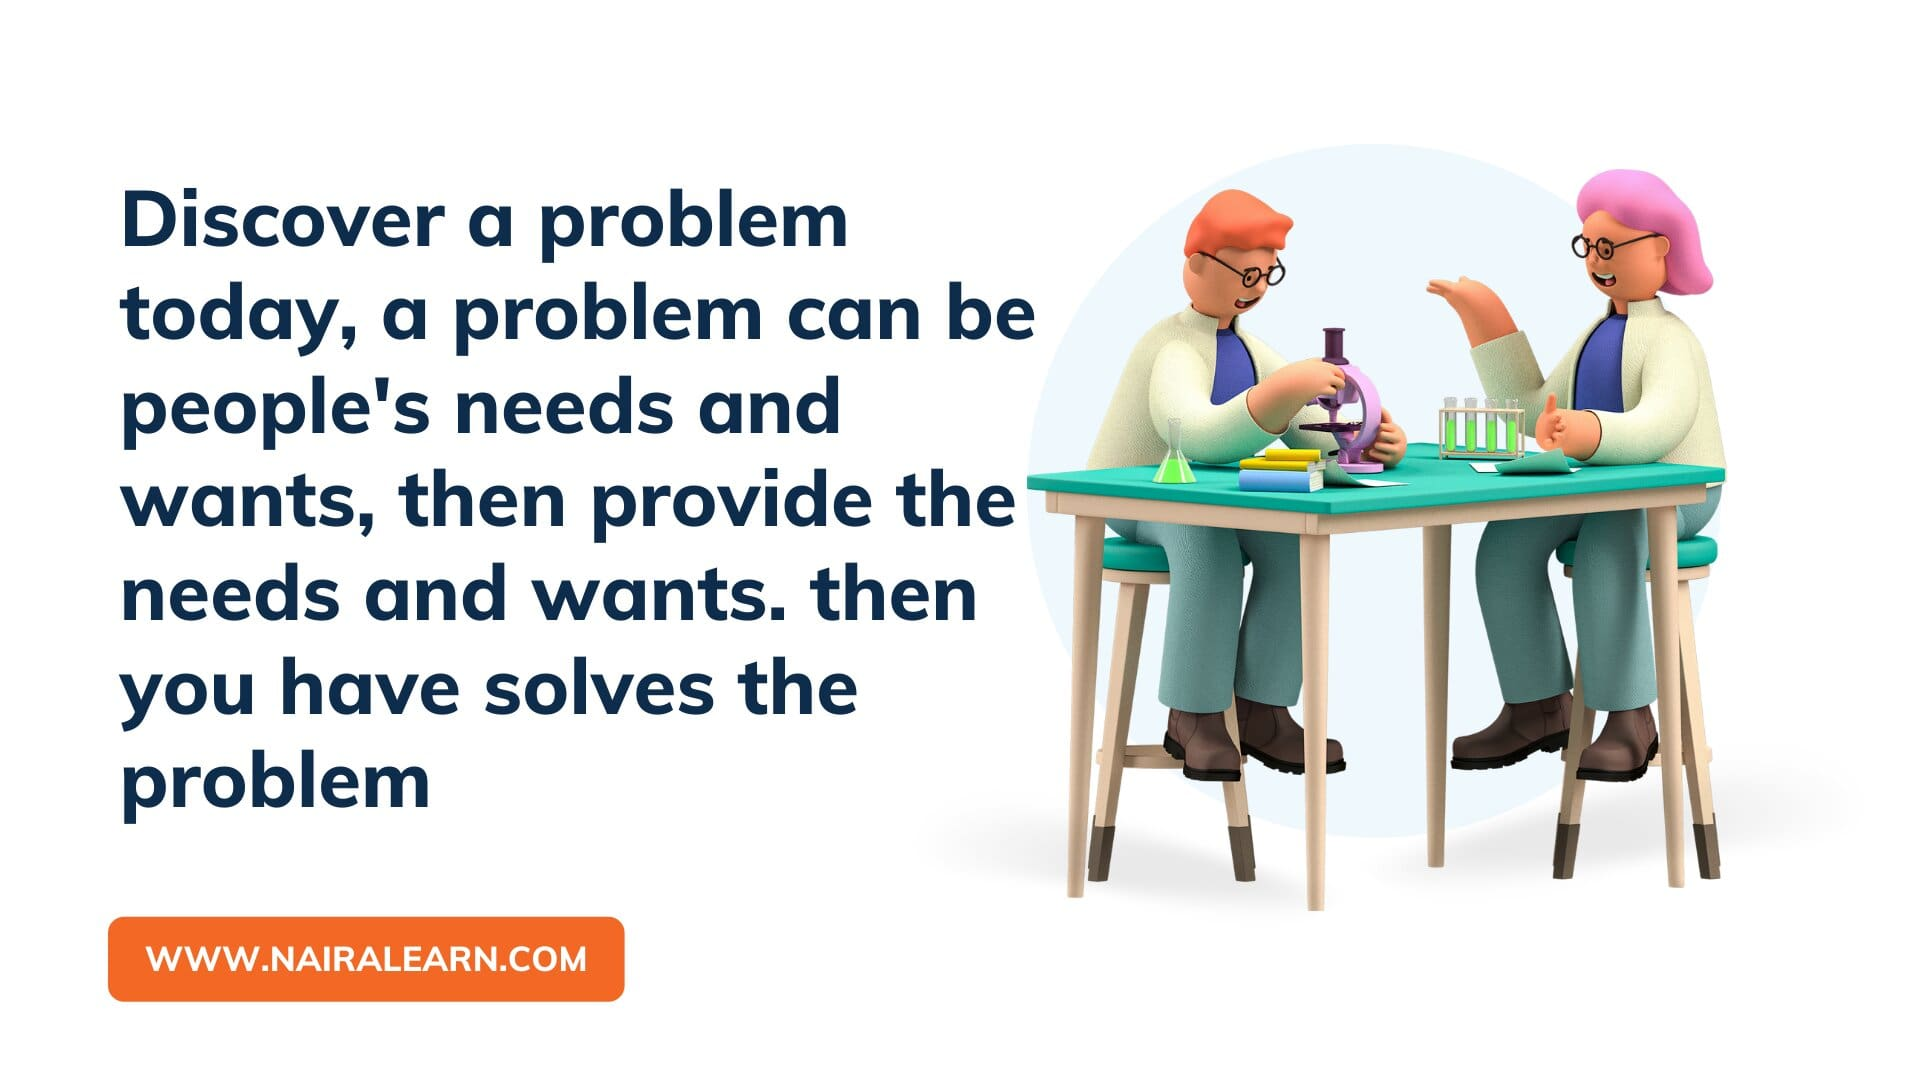 Discover a problem today, a problem can be people's needs and wants, then provide the needs and wants. then you have solves the problem